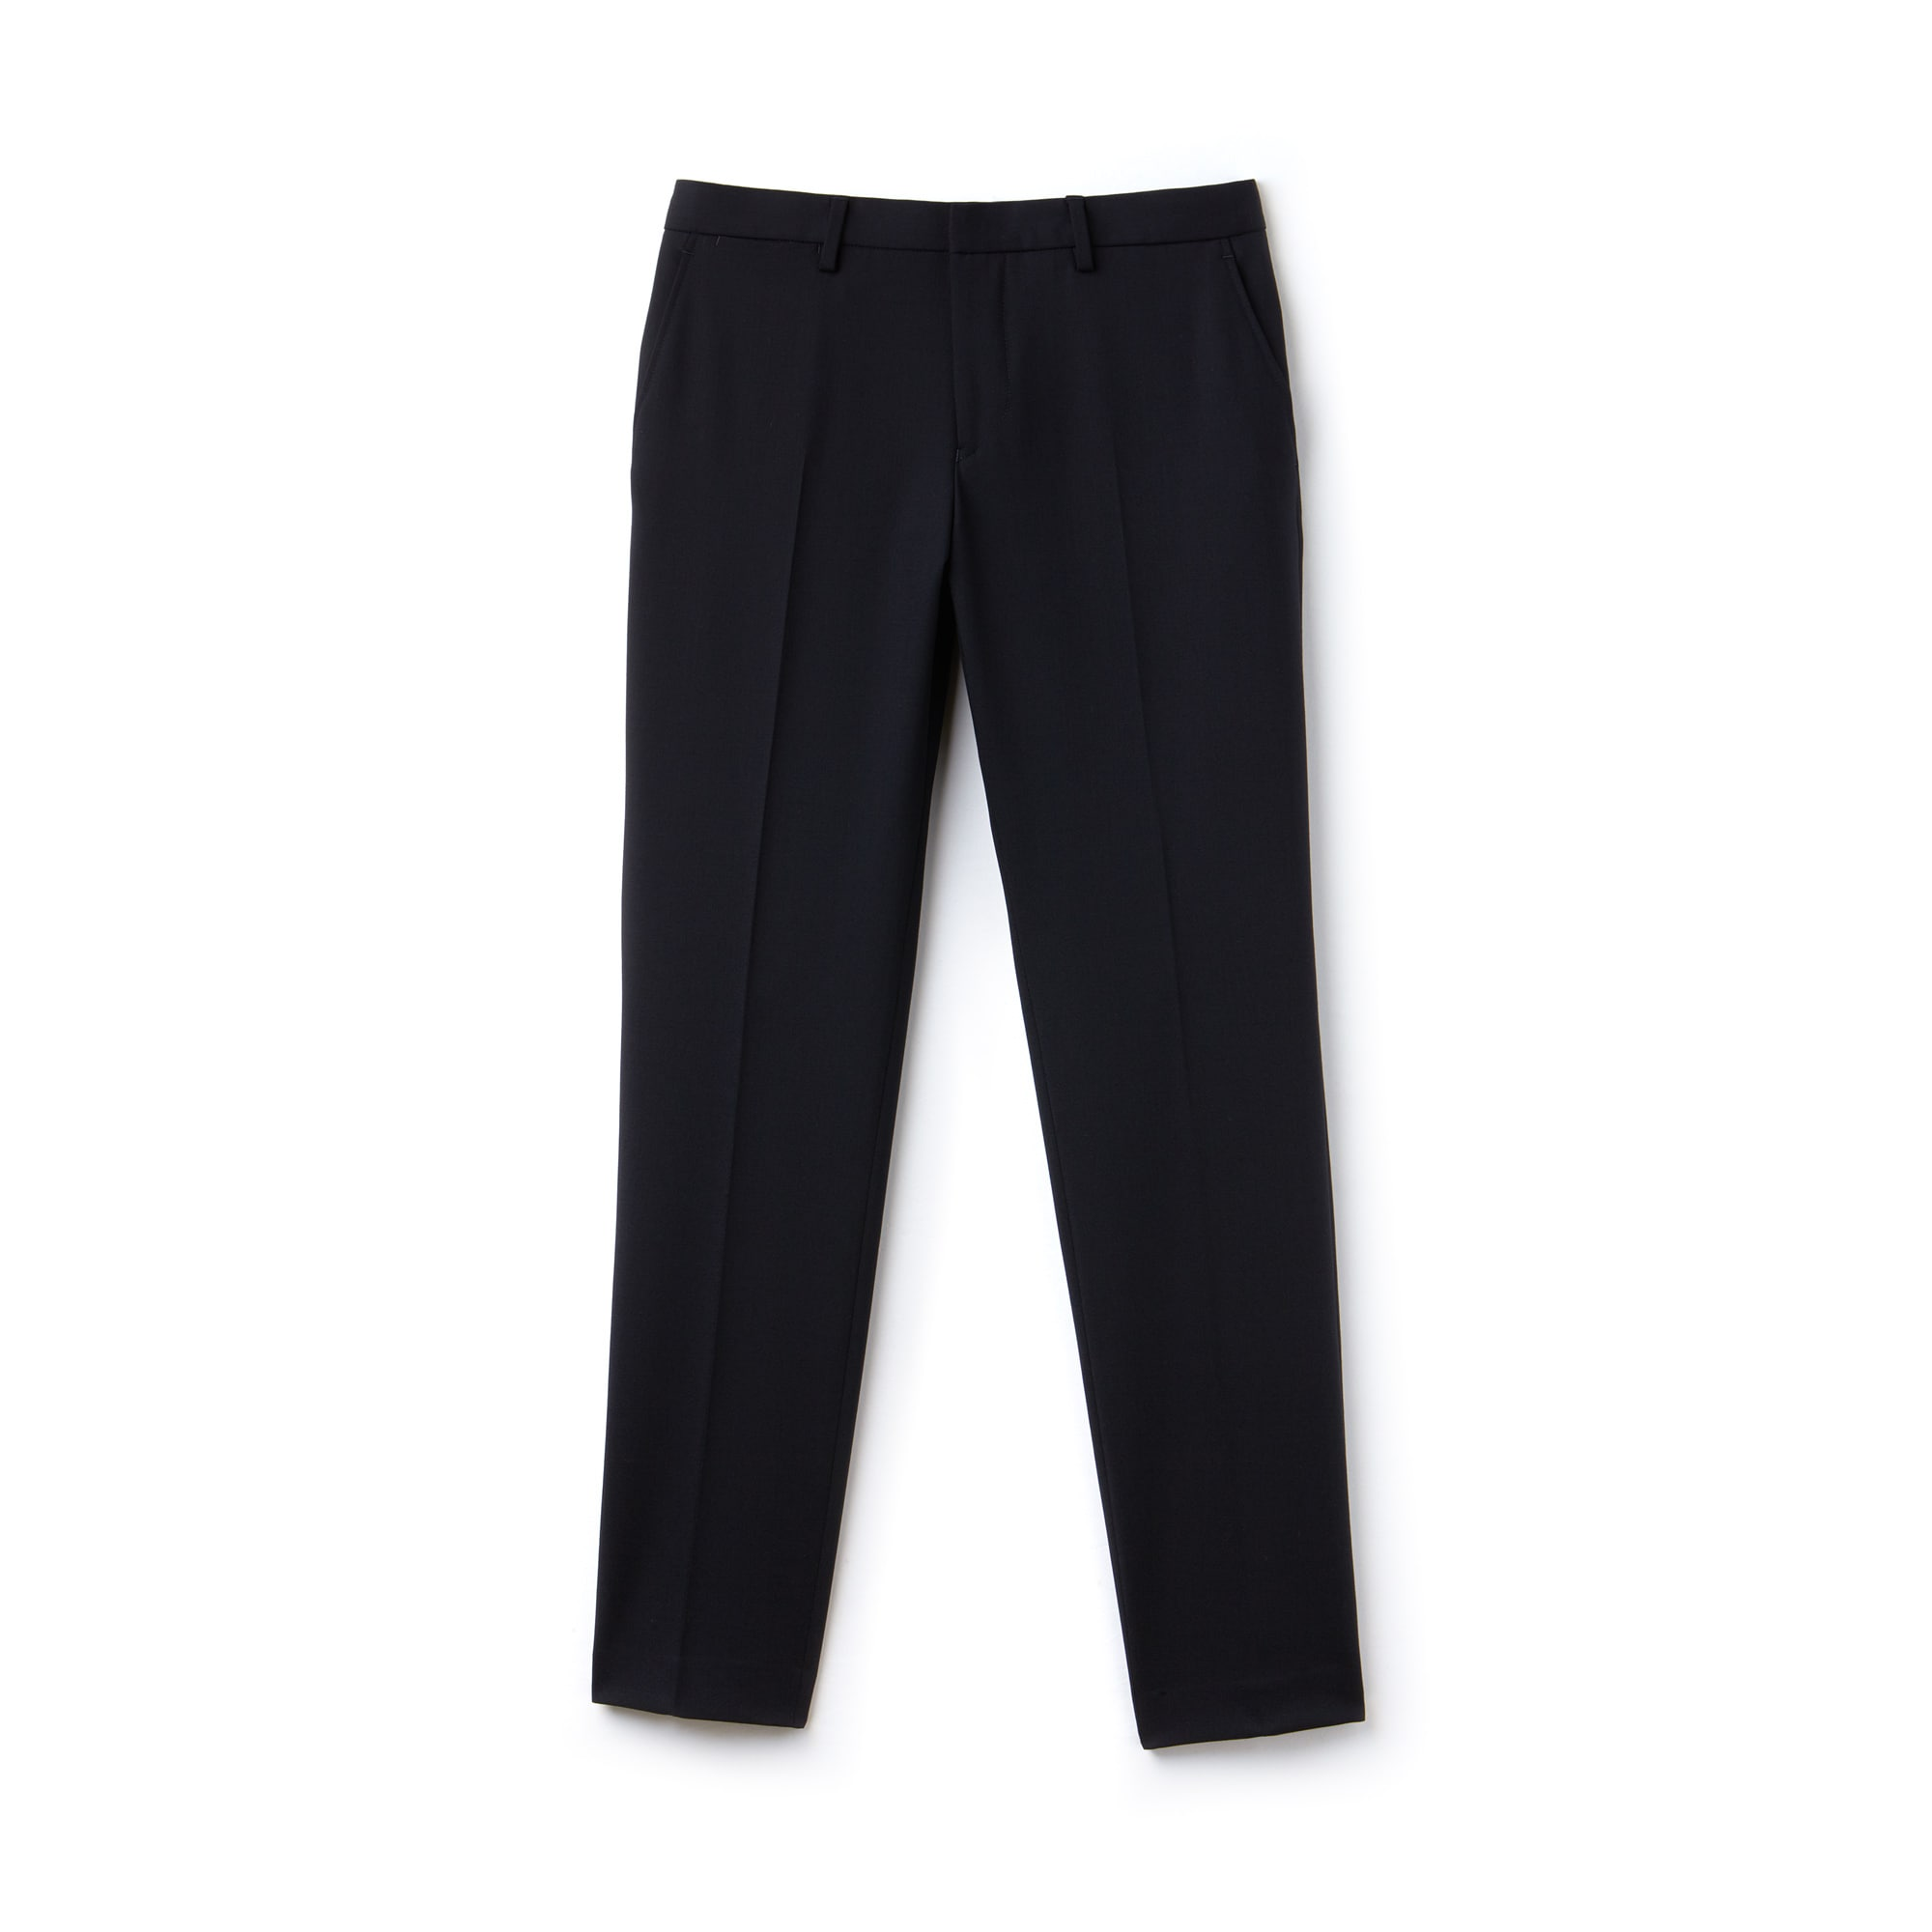 Pantaloni chino slim fit in twill stretch tinta unita